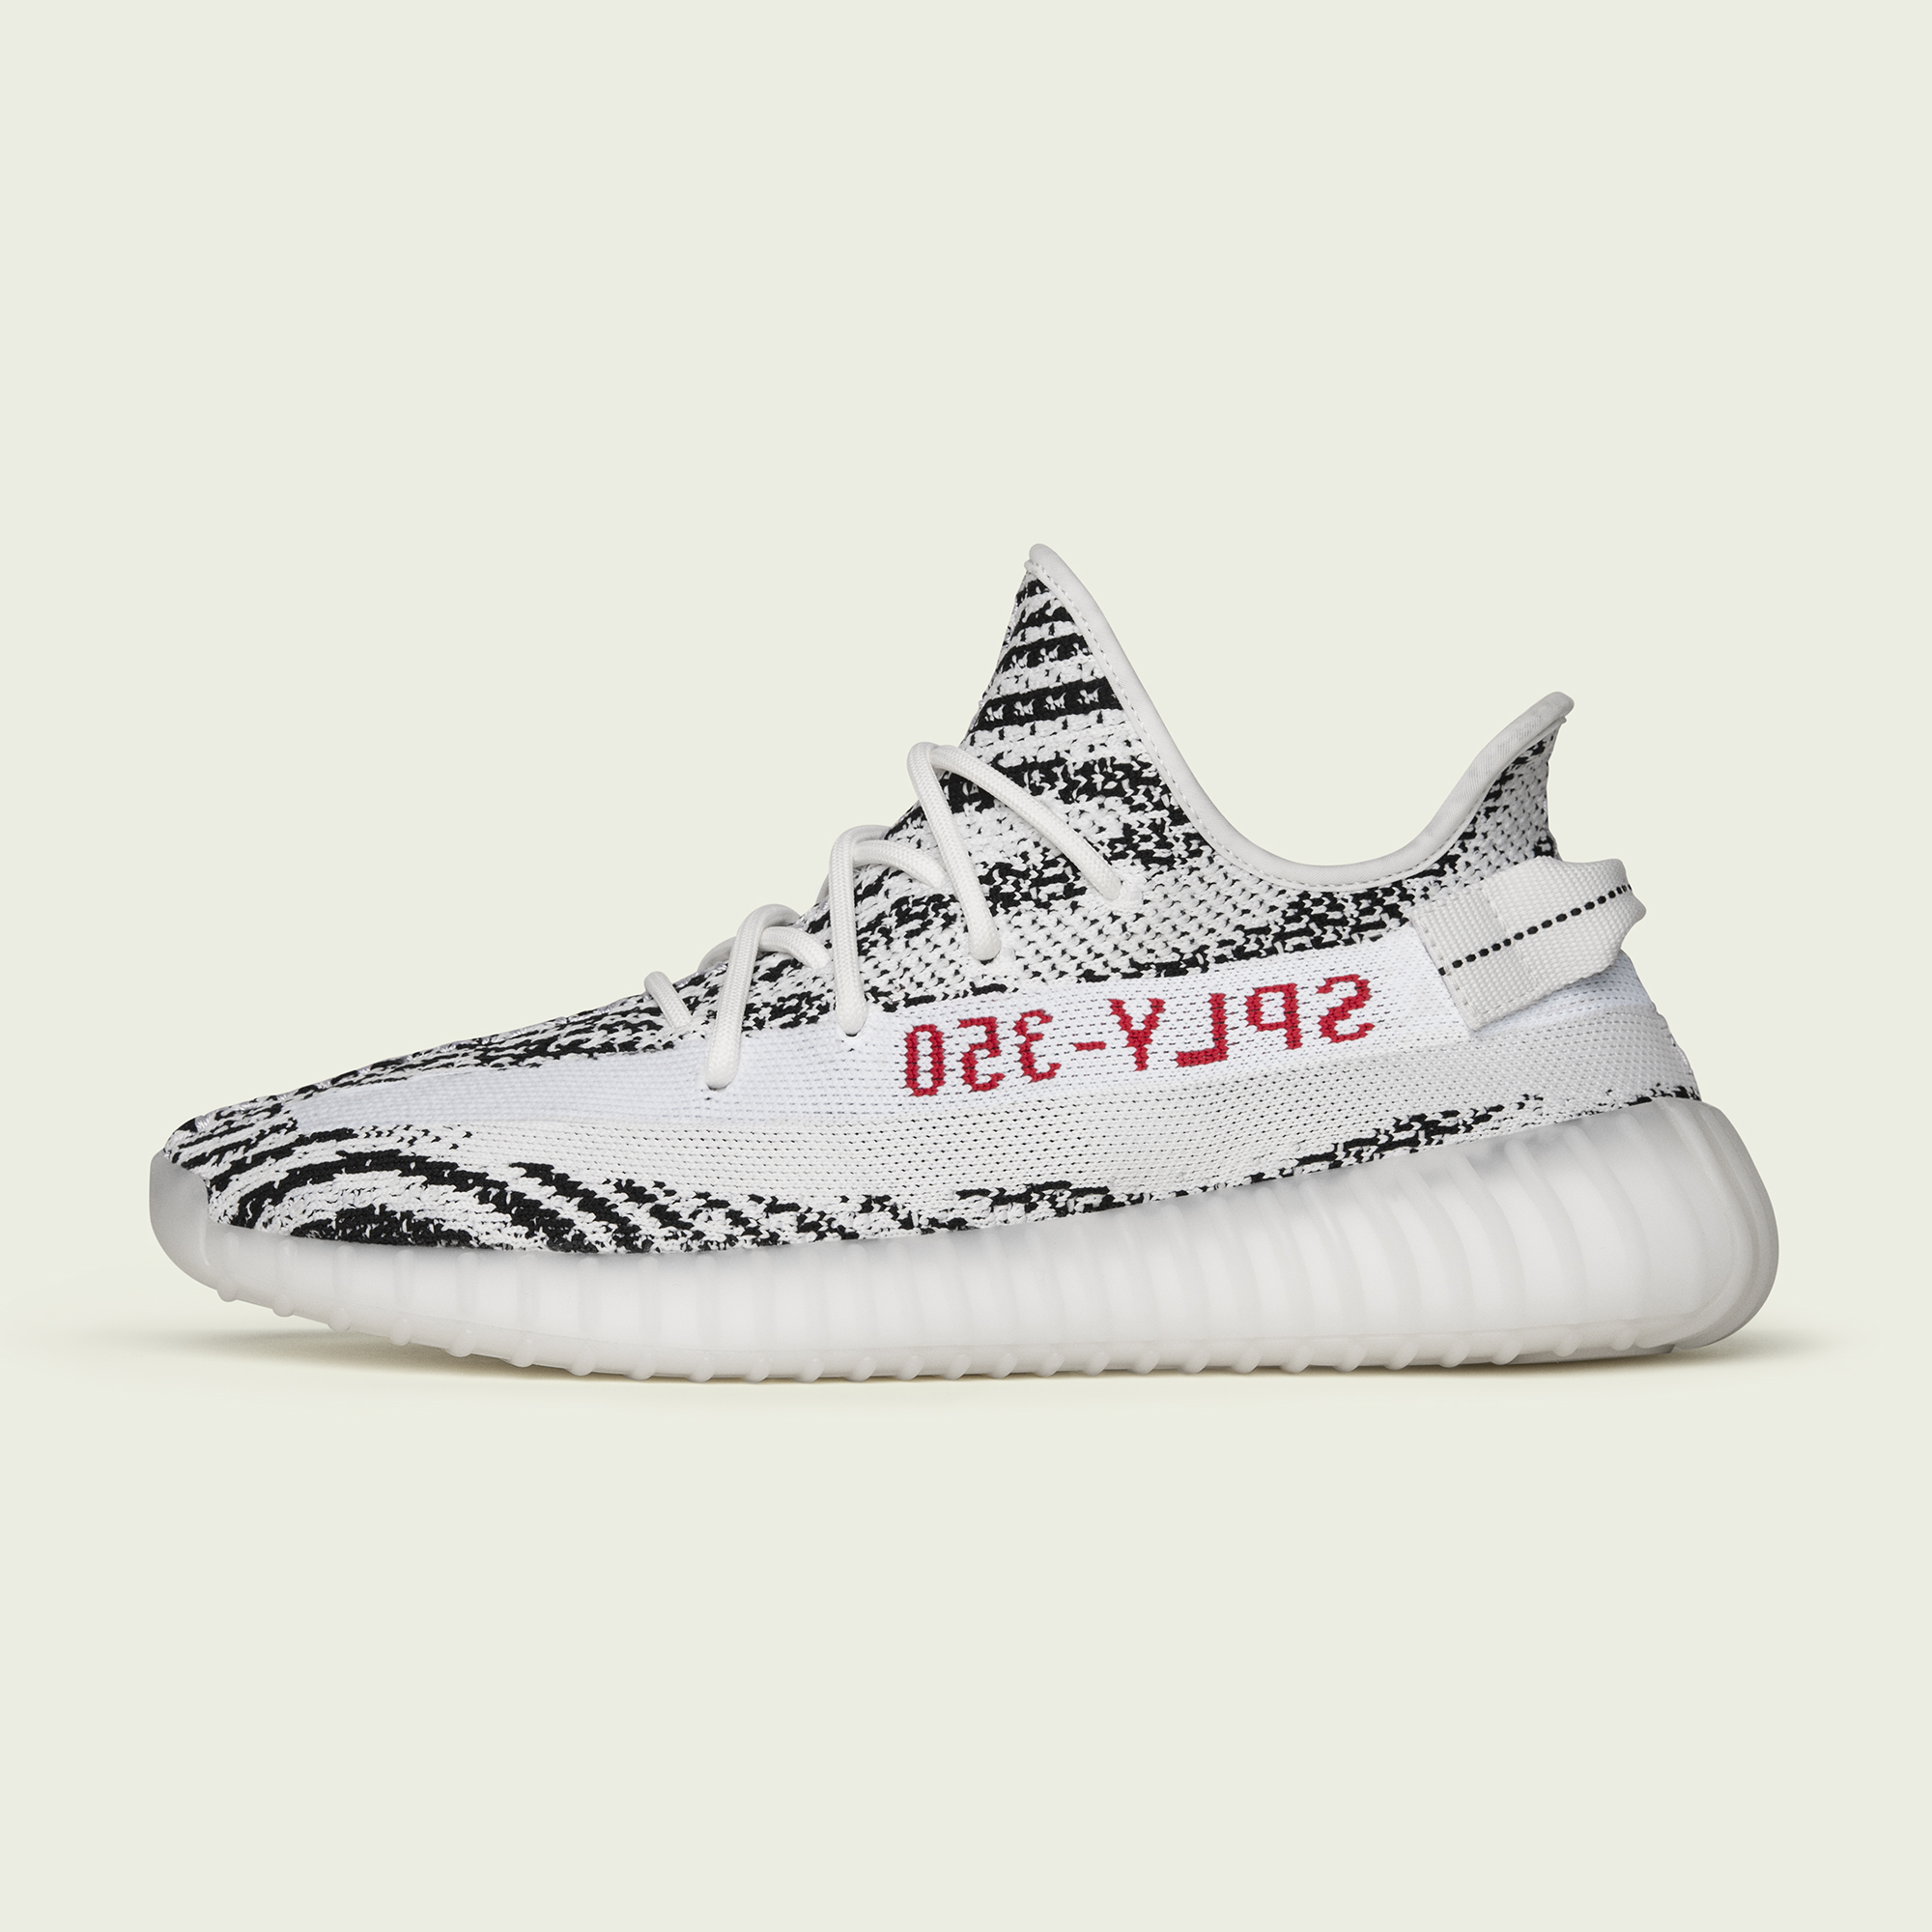 Get Ready For The adidas Yeezy Boost 350 v2 Zebra Restock